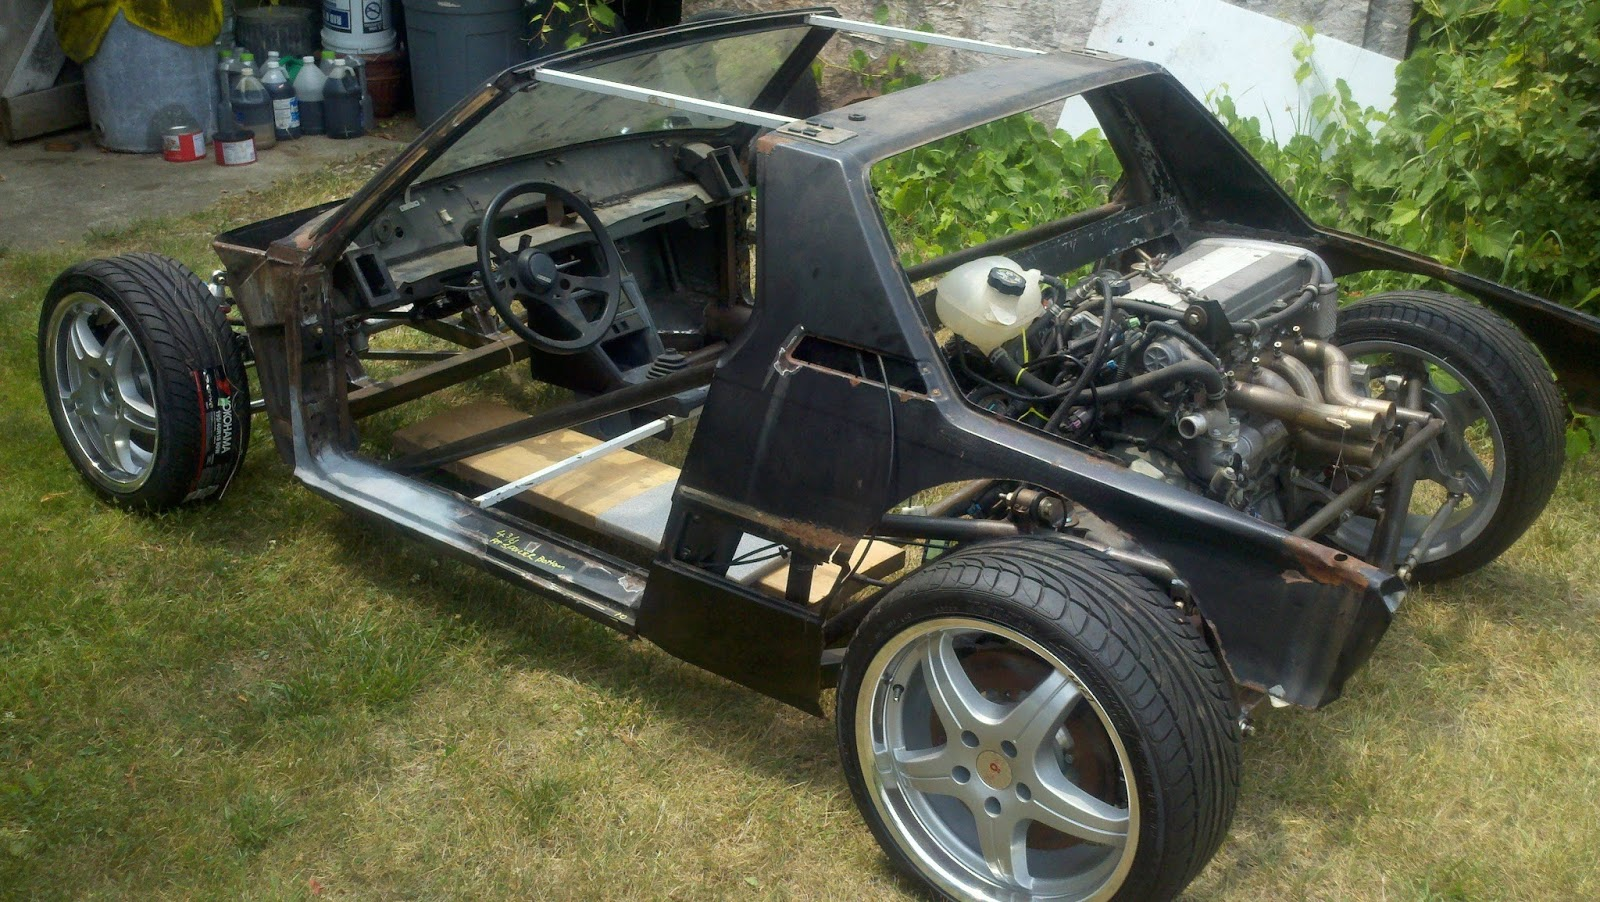 Dads Supercar A Great Mid Engine Build Diagram